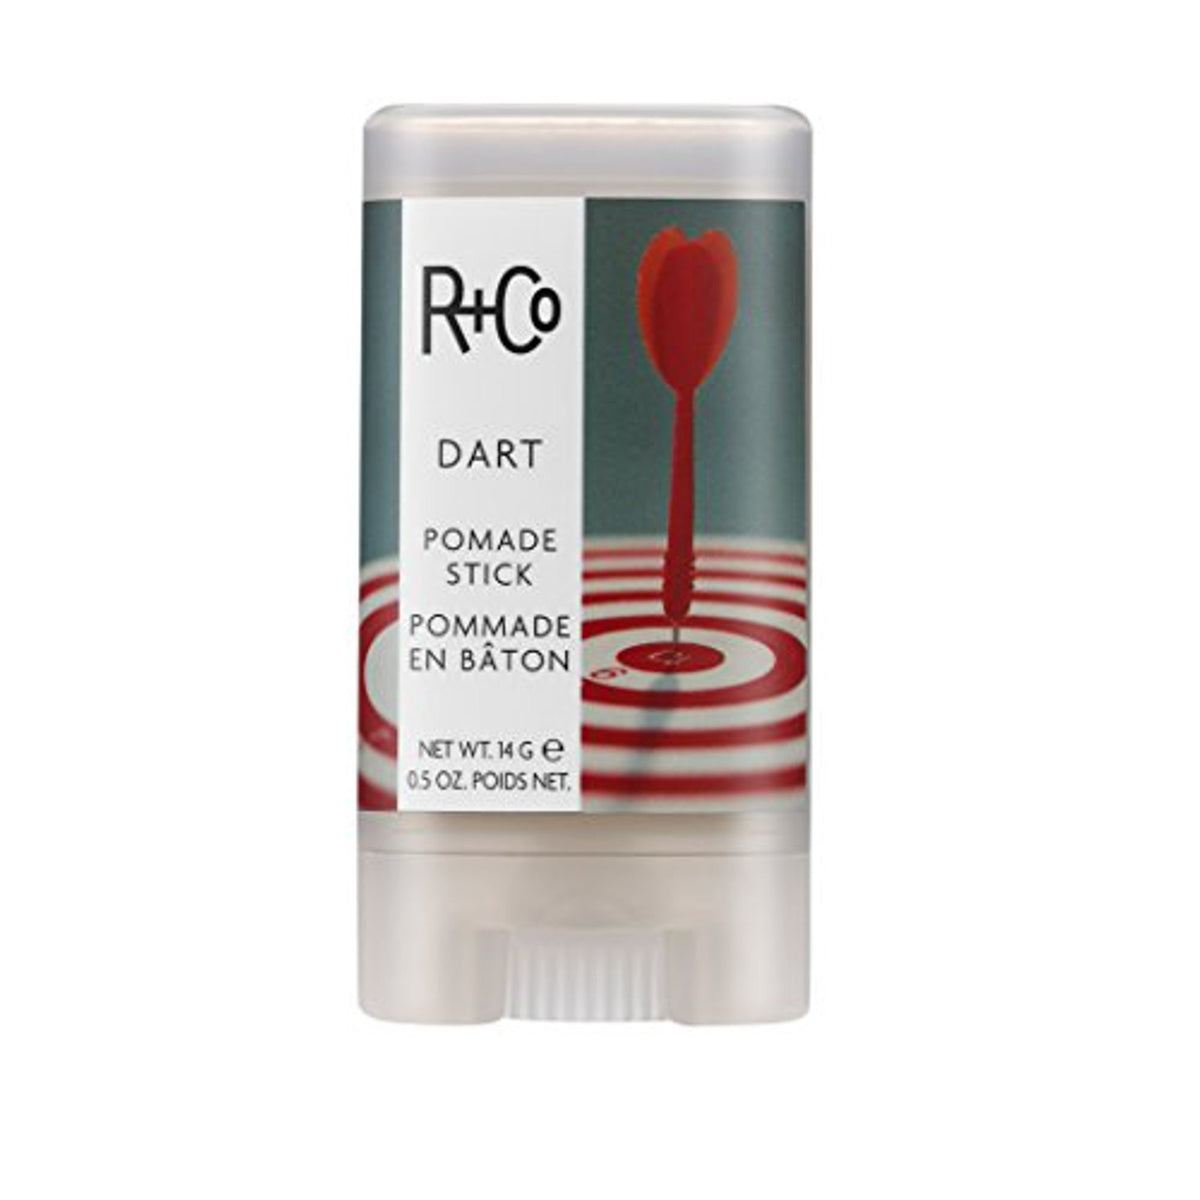 r+co | dart - pomade stick[product_type ]r+co - Kiss and Makeup